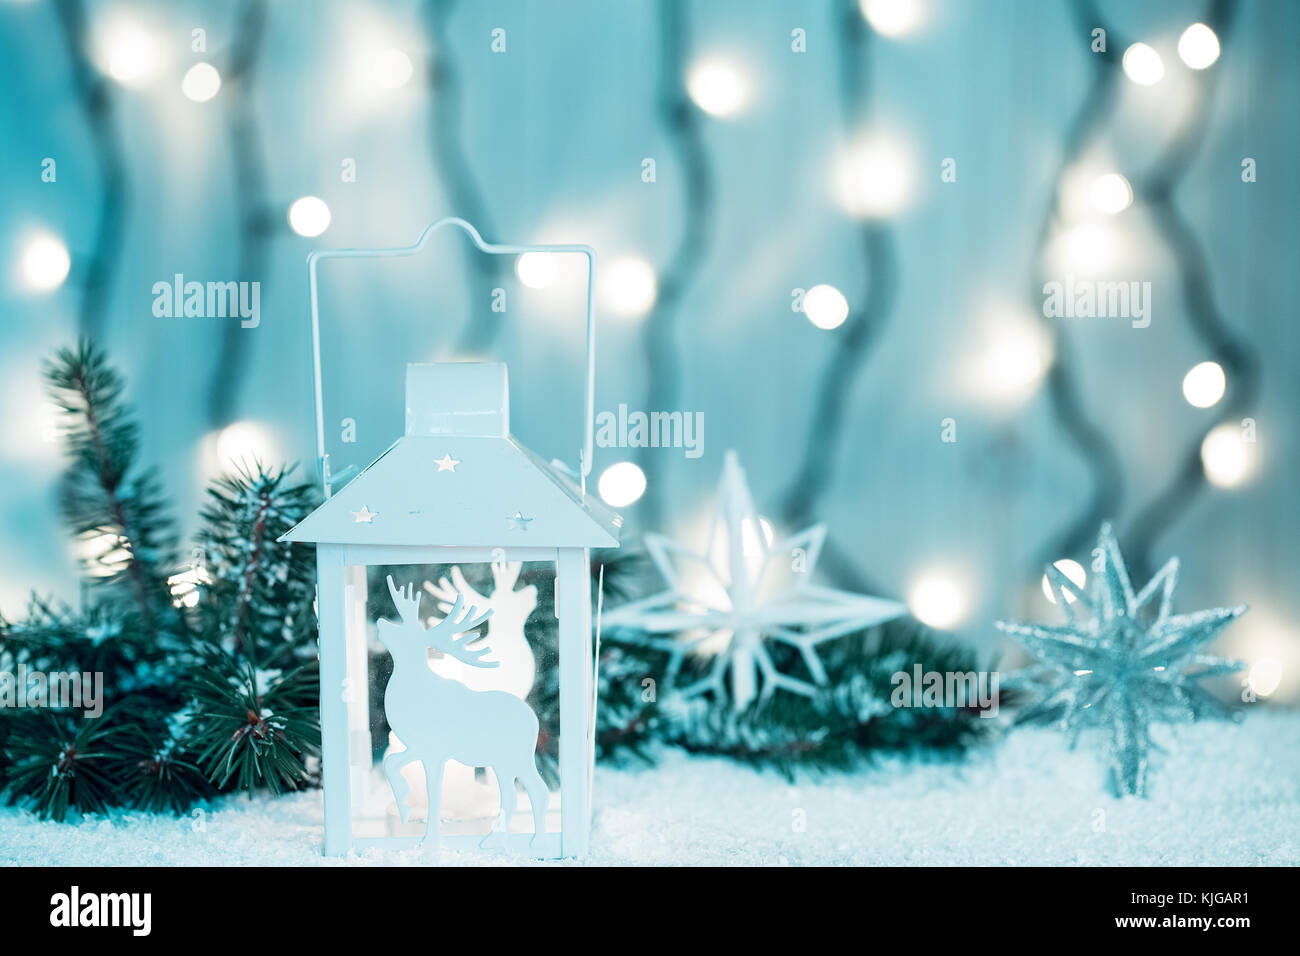 Christmas Candle Lantern Stockfotos & Christmas Candle Lantern ...